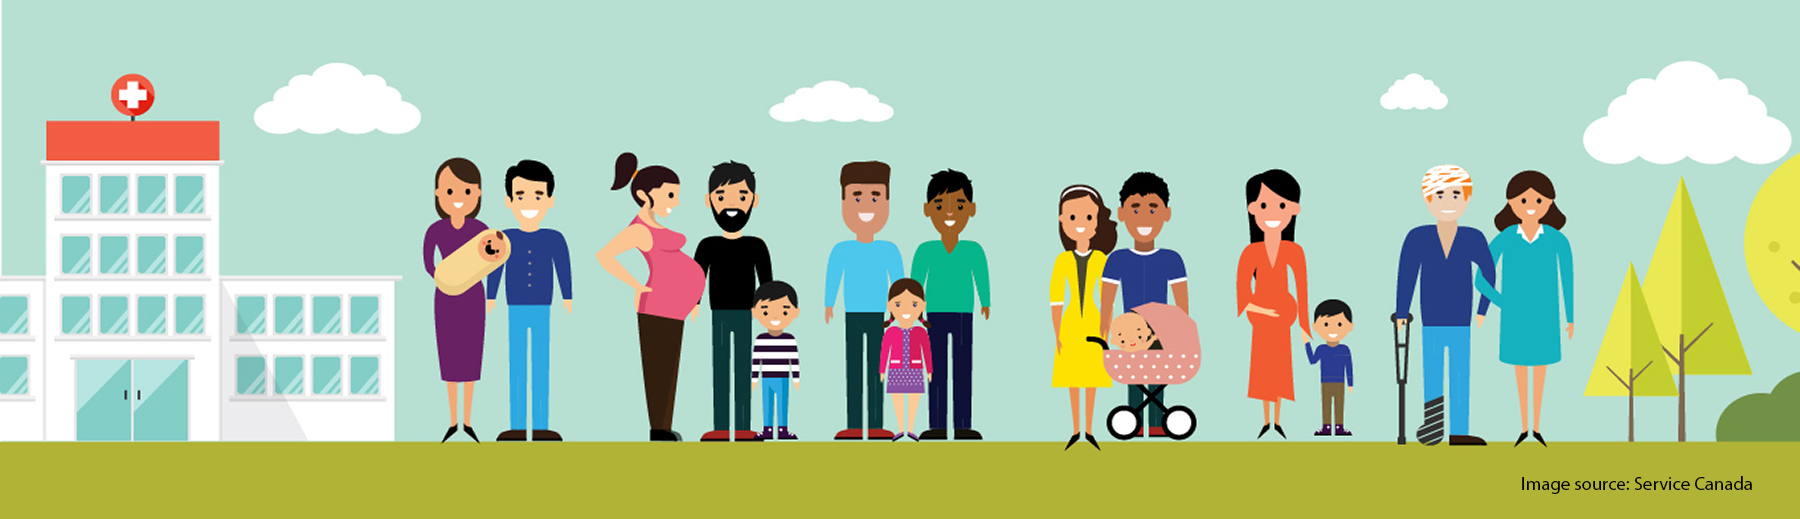 Cartoon image of many different people and family groups